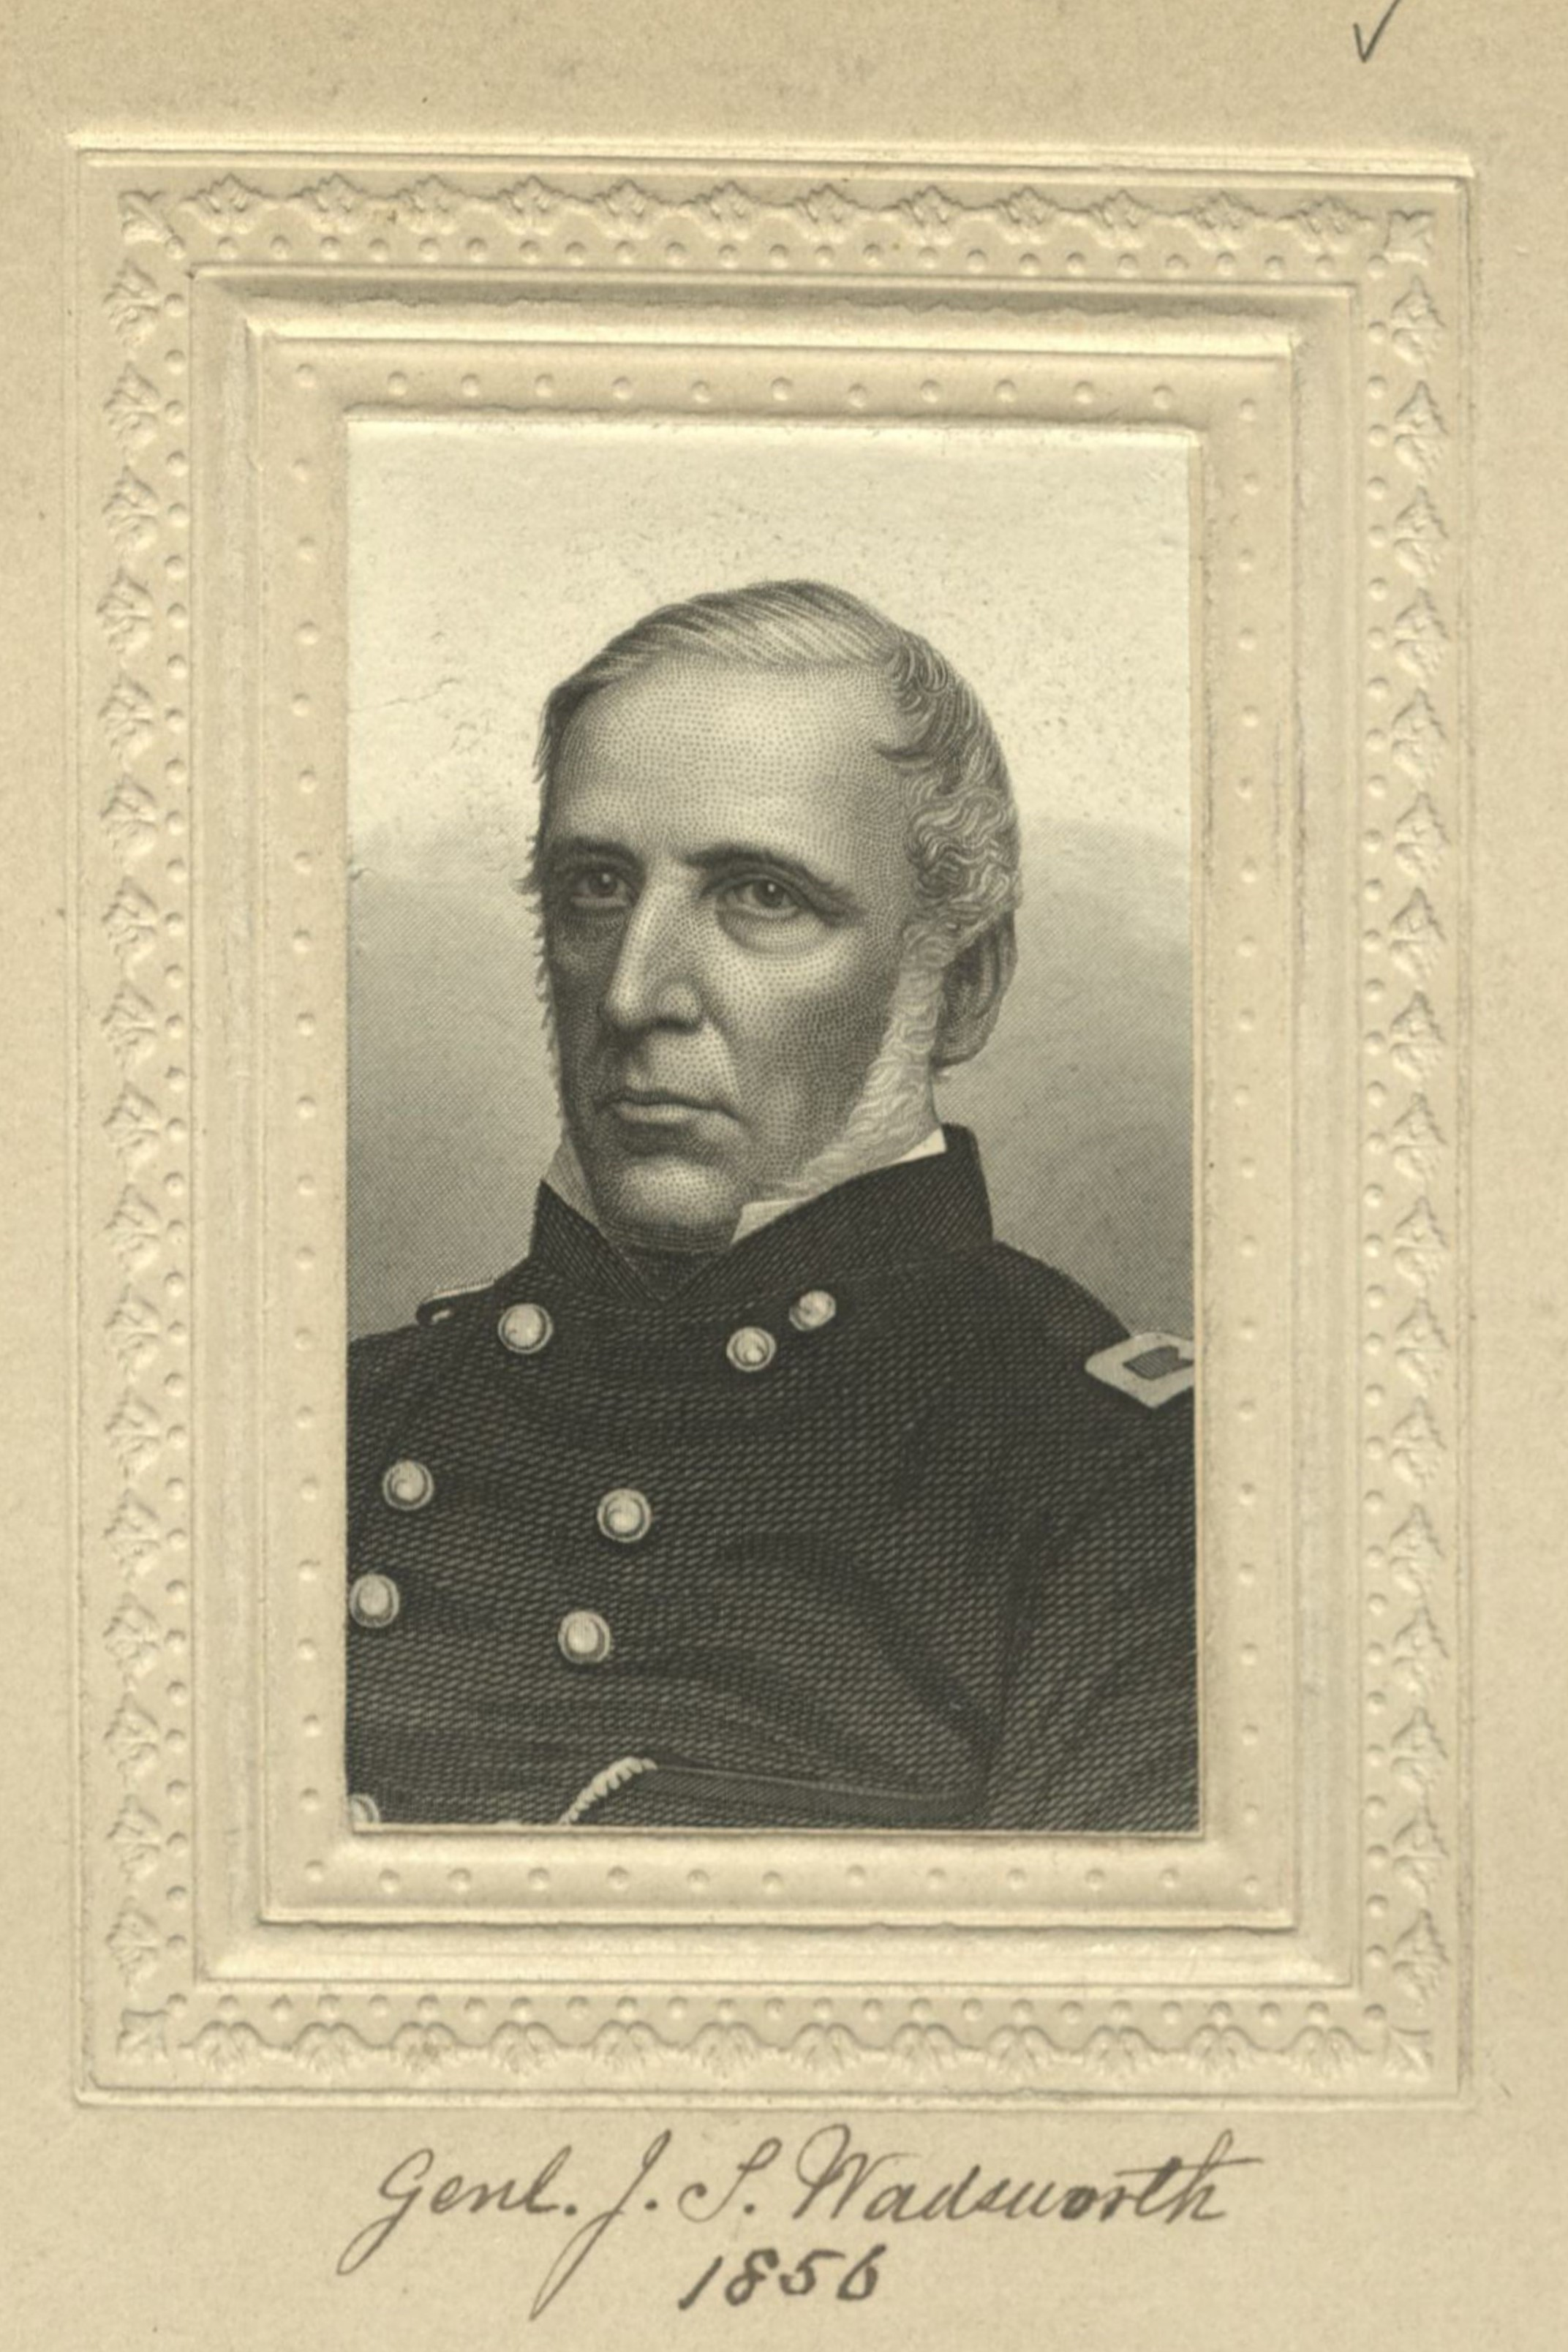 Member portrait of James S. Wadsworth